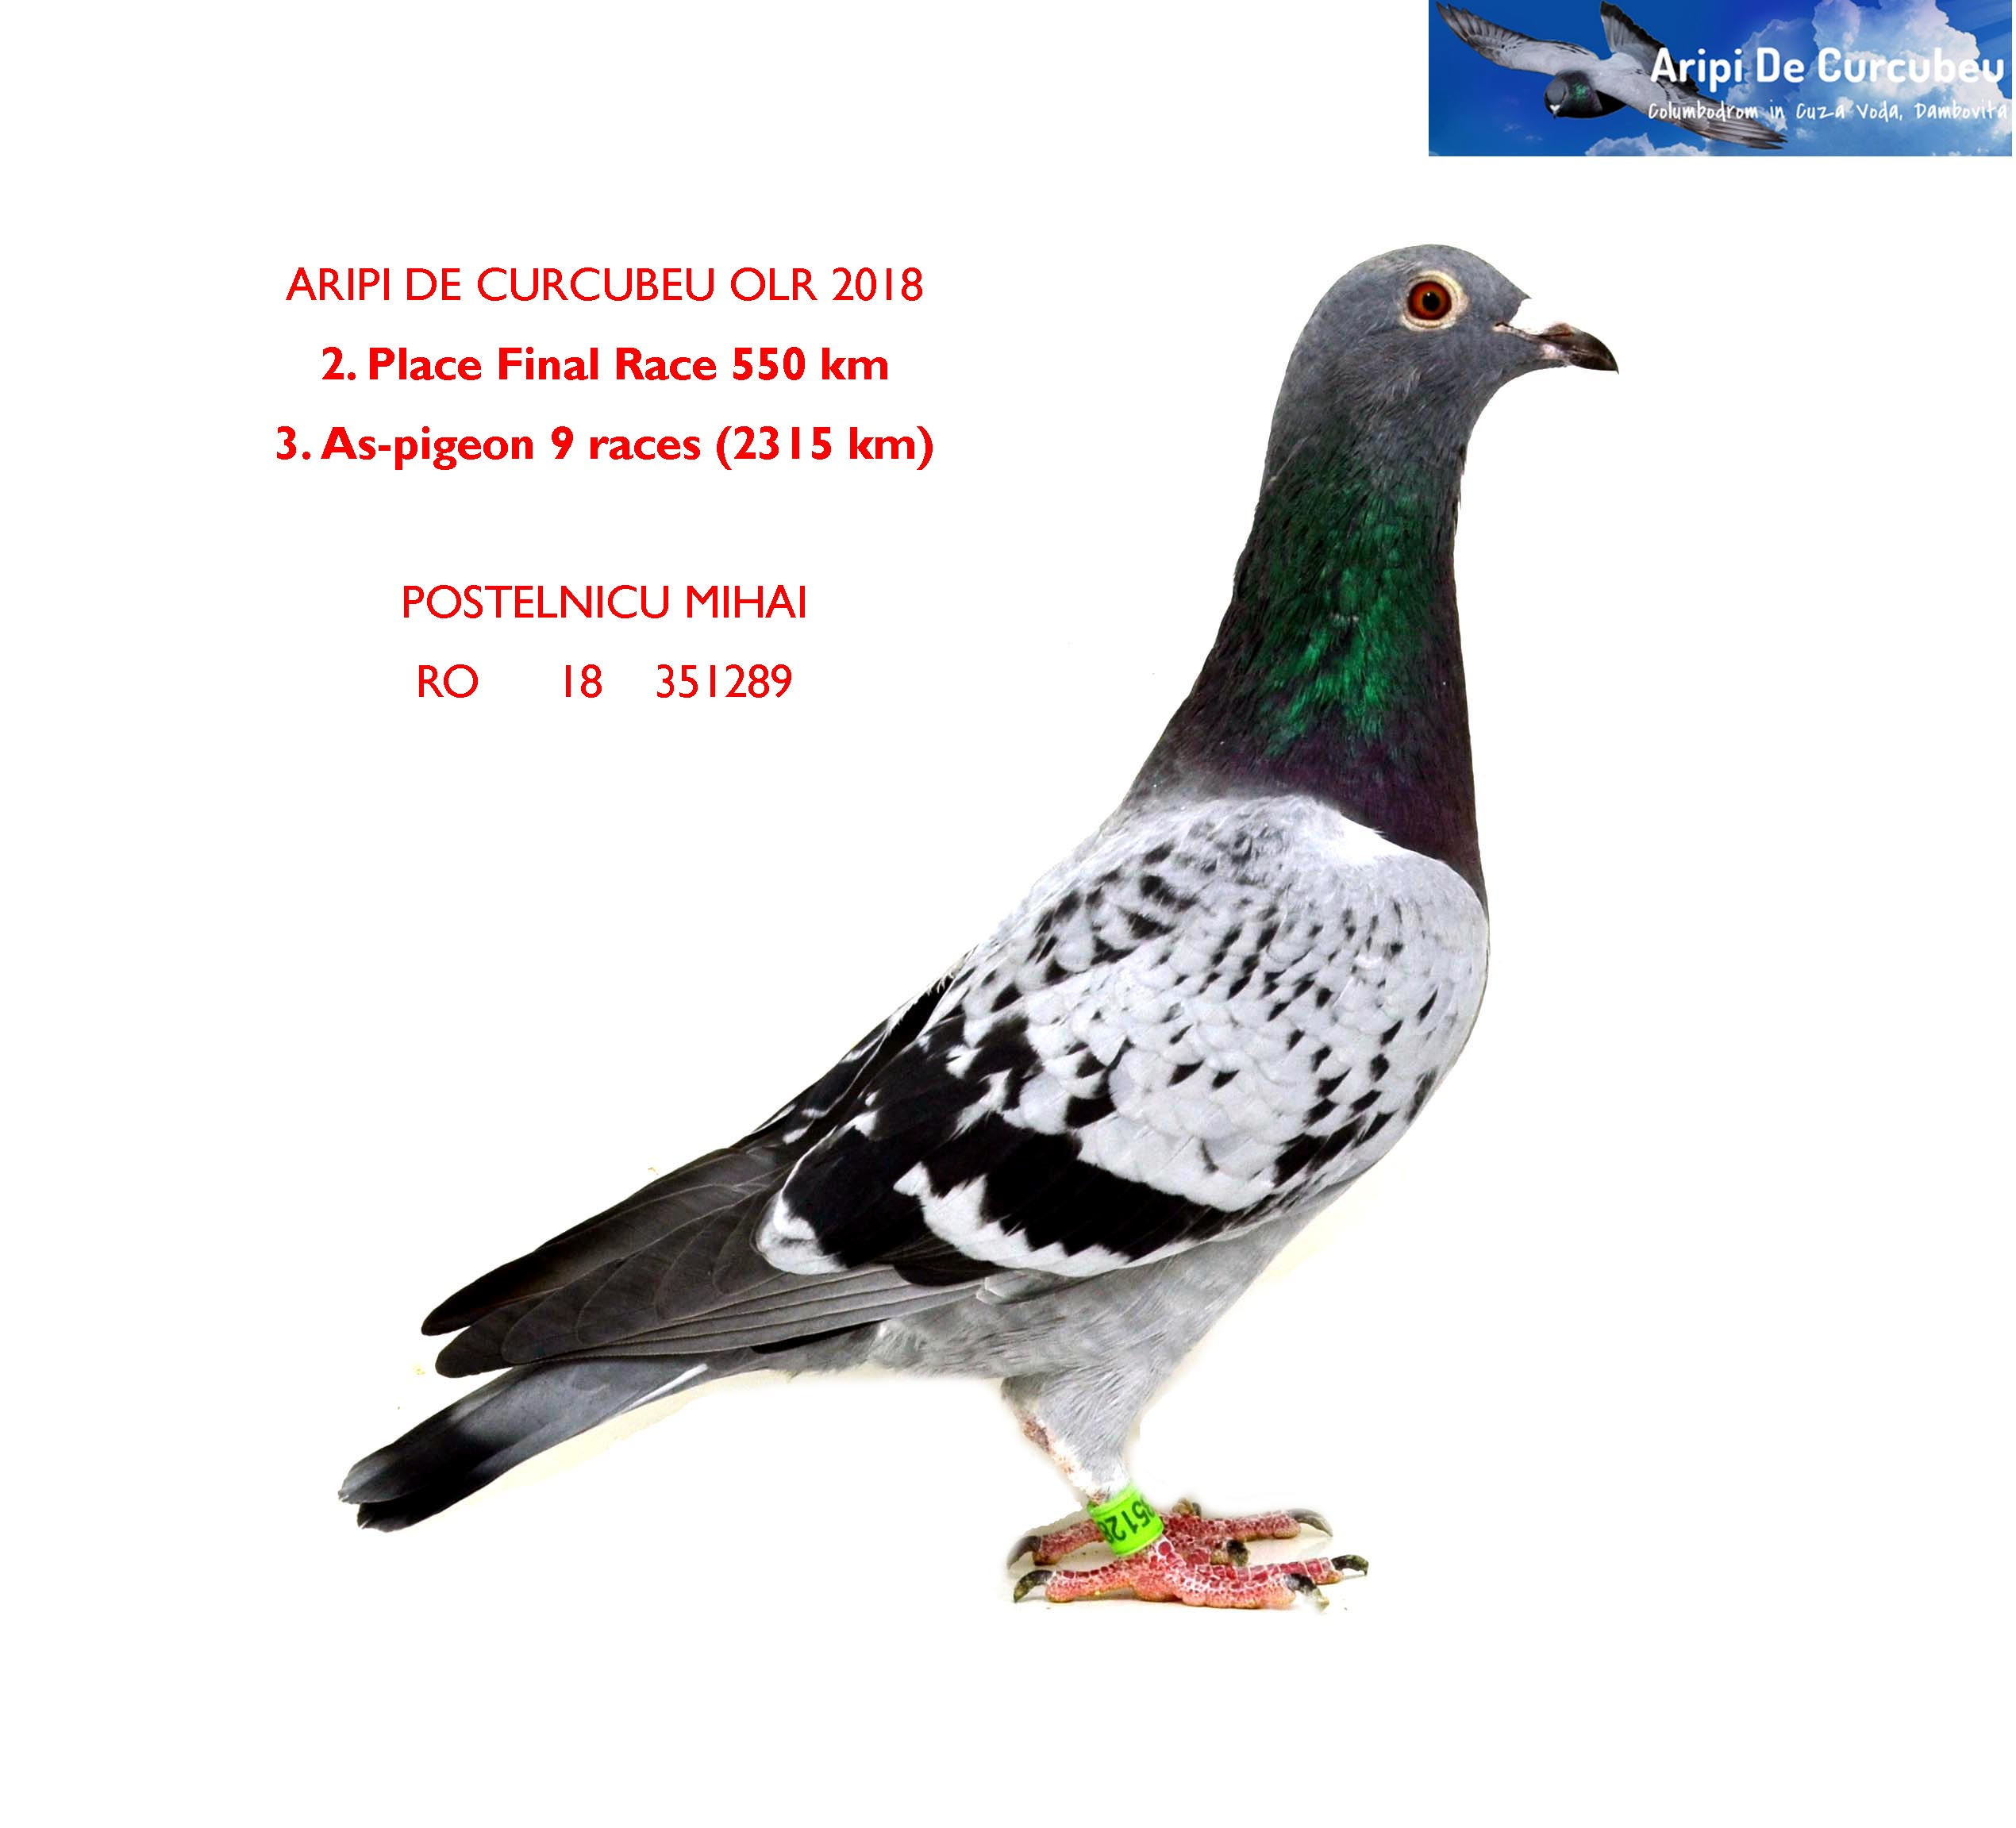 2 FINAL RACE 550km + 3 AS-PIGEON POSTELNICU MIHAI    	RO      18    351289